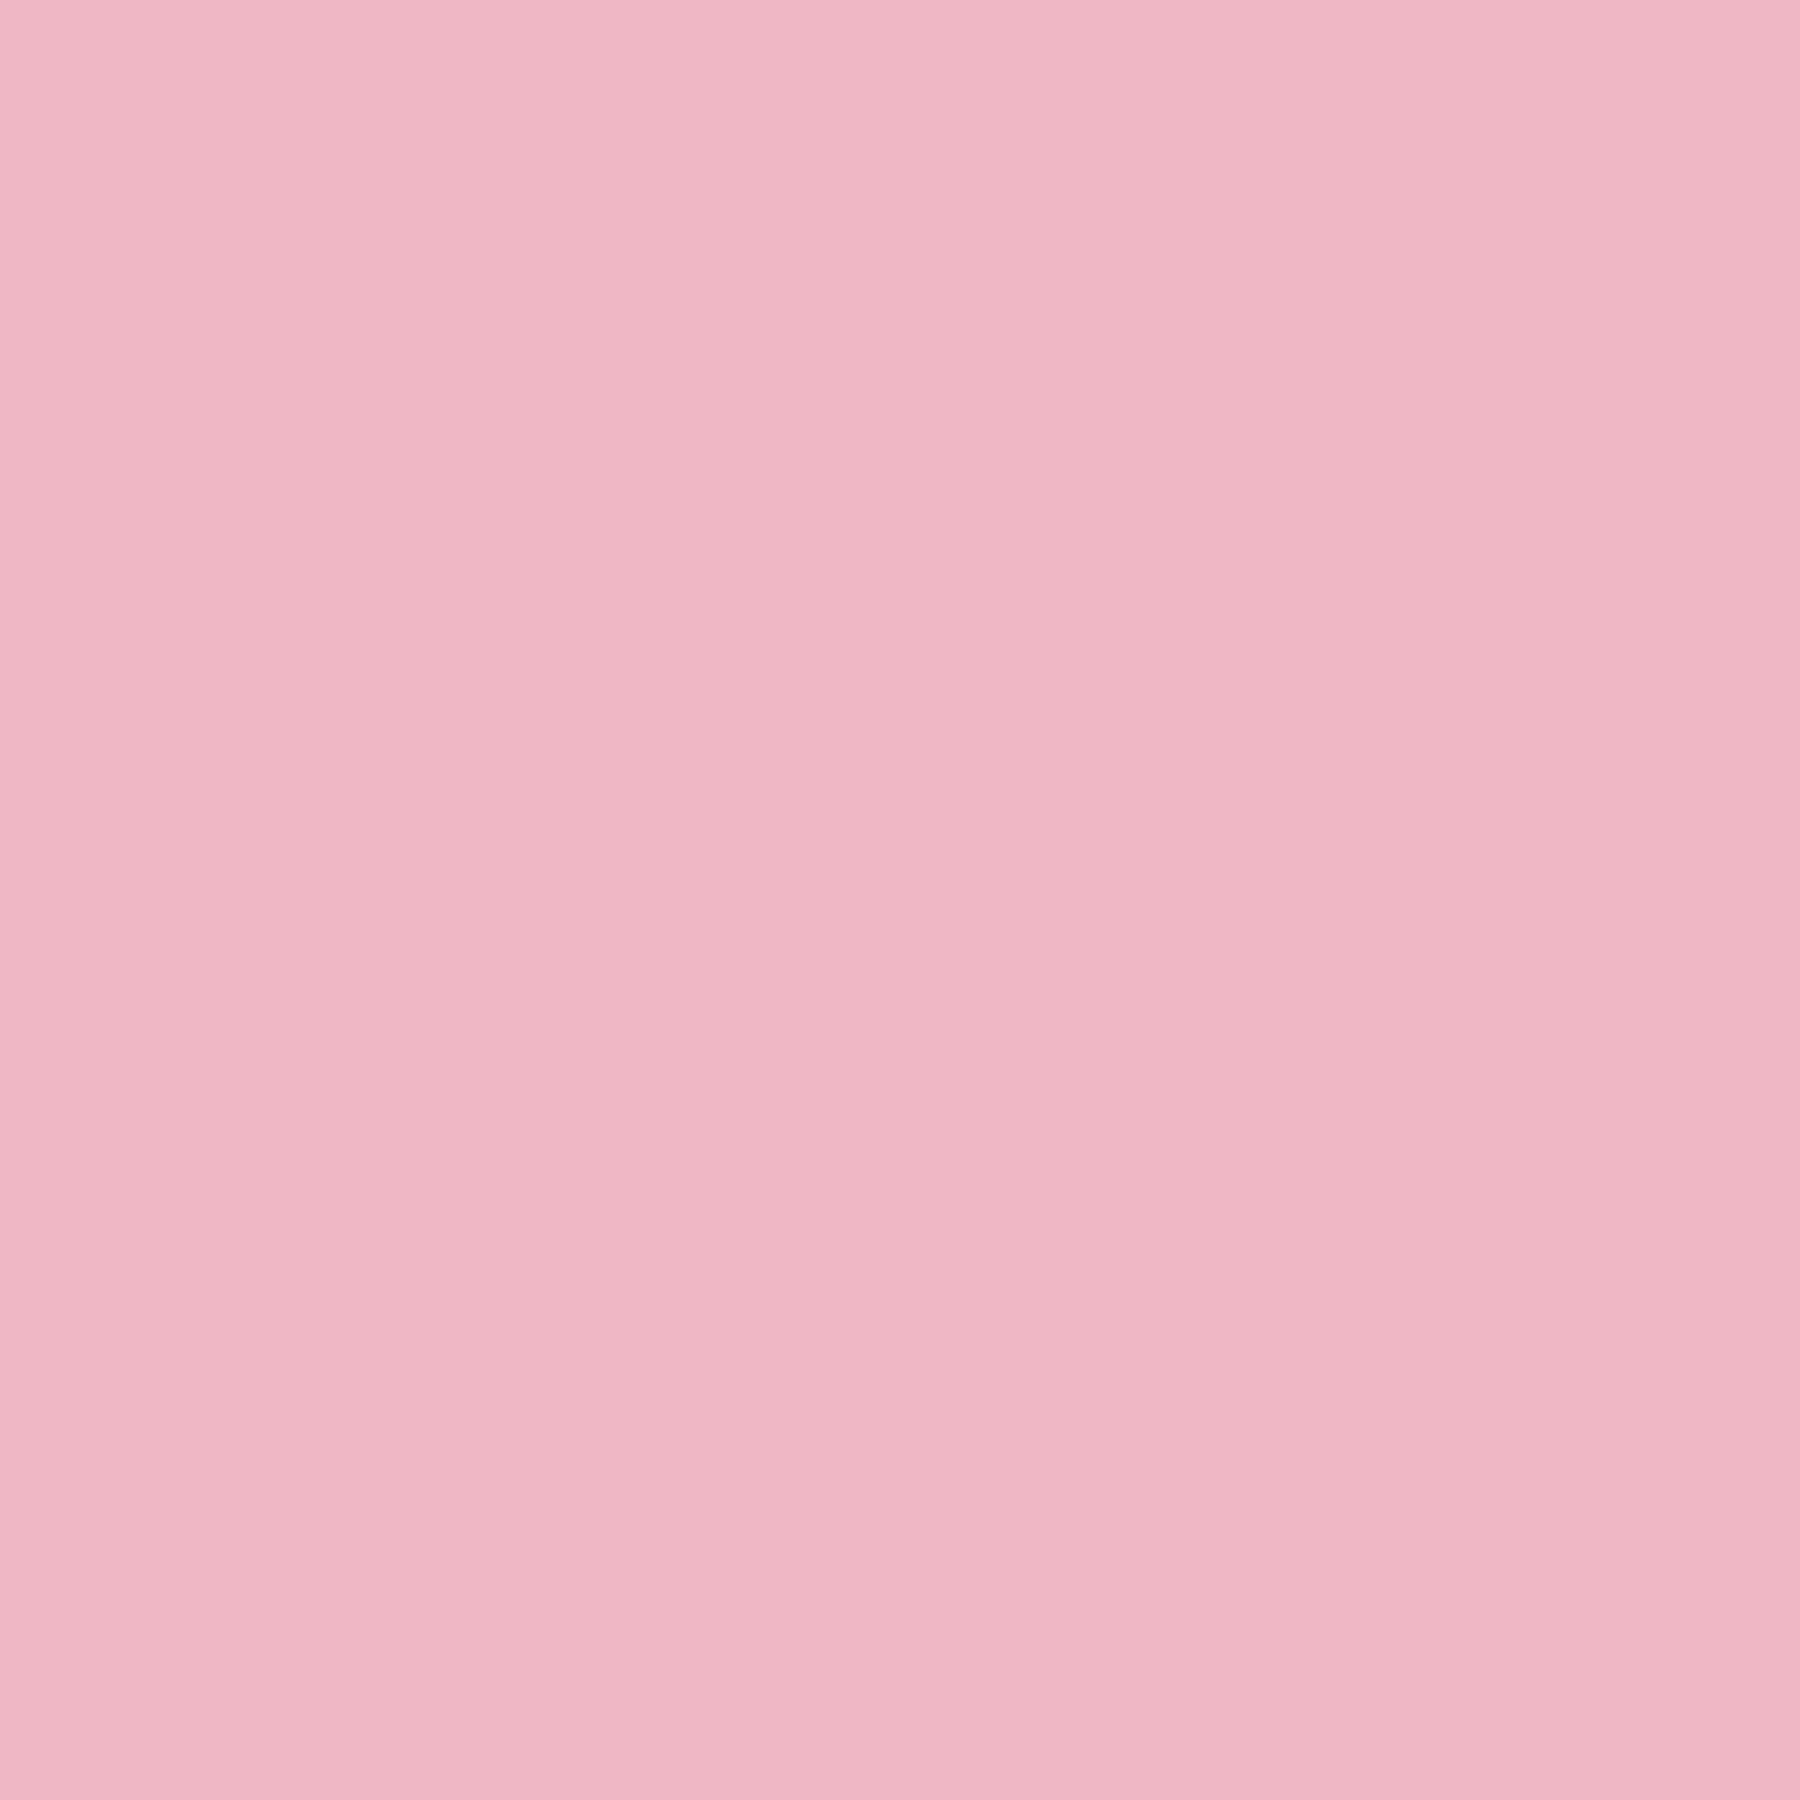 Carnation Pink - Oracal 631